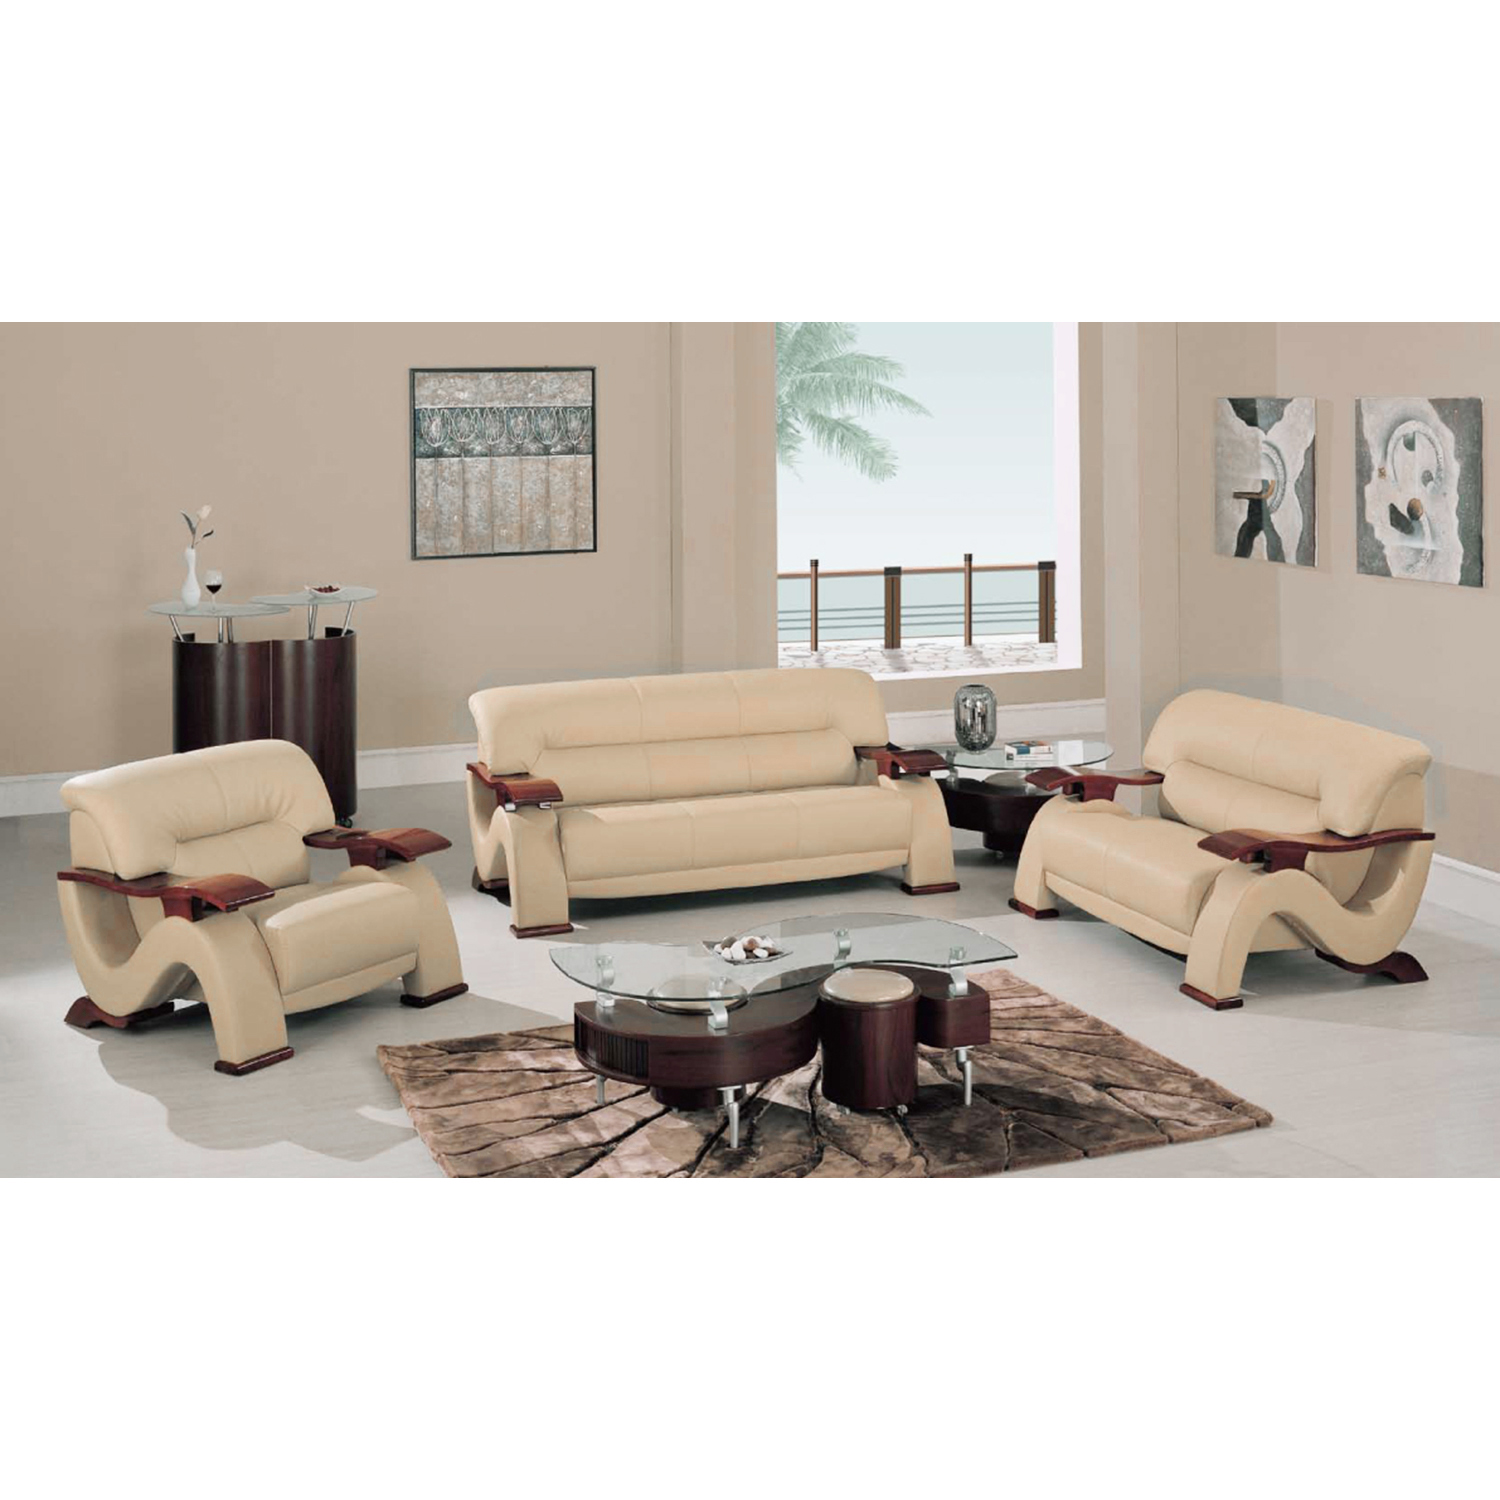 Valerie Bonded Leather Chair - Cappuccino Upholstery with Mahogany Legs - GLO-U2033-RV-CAP-CH